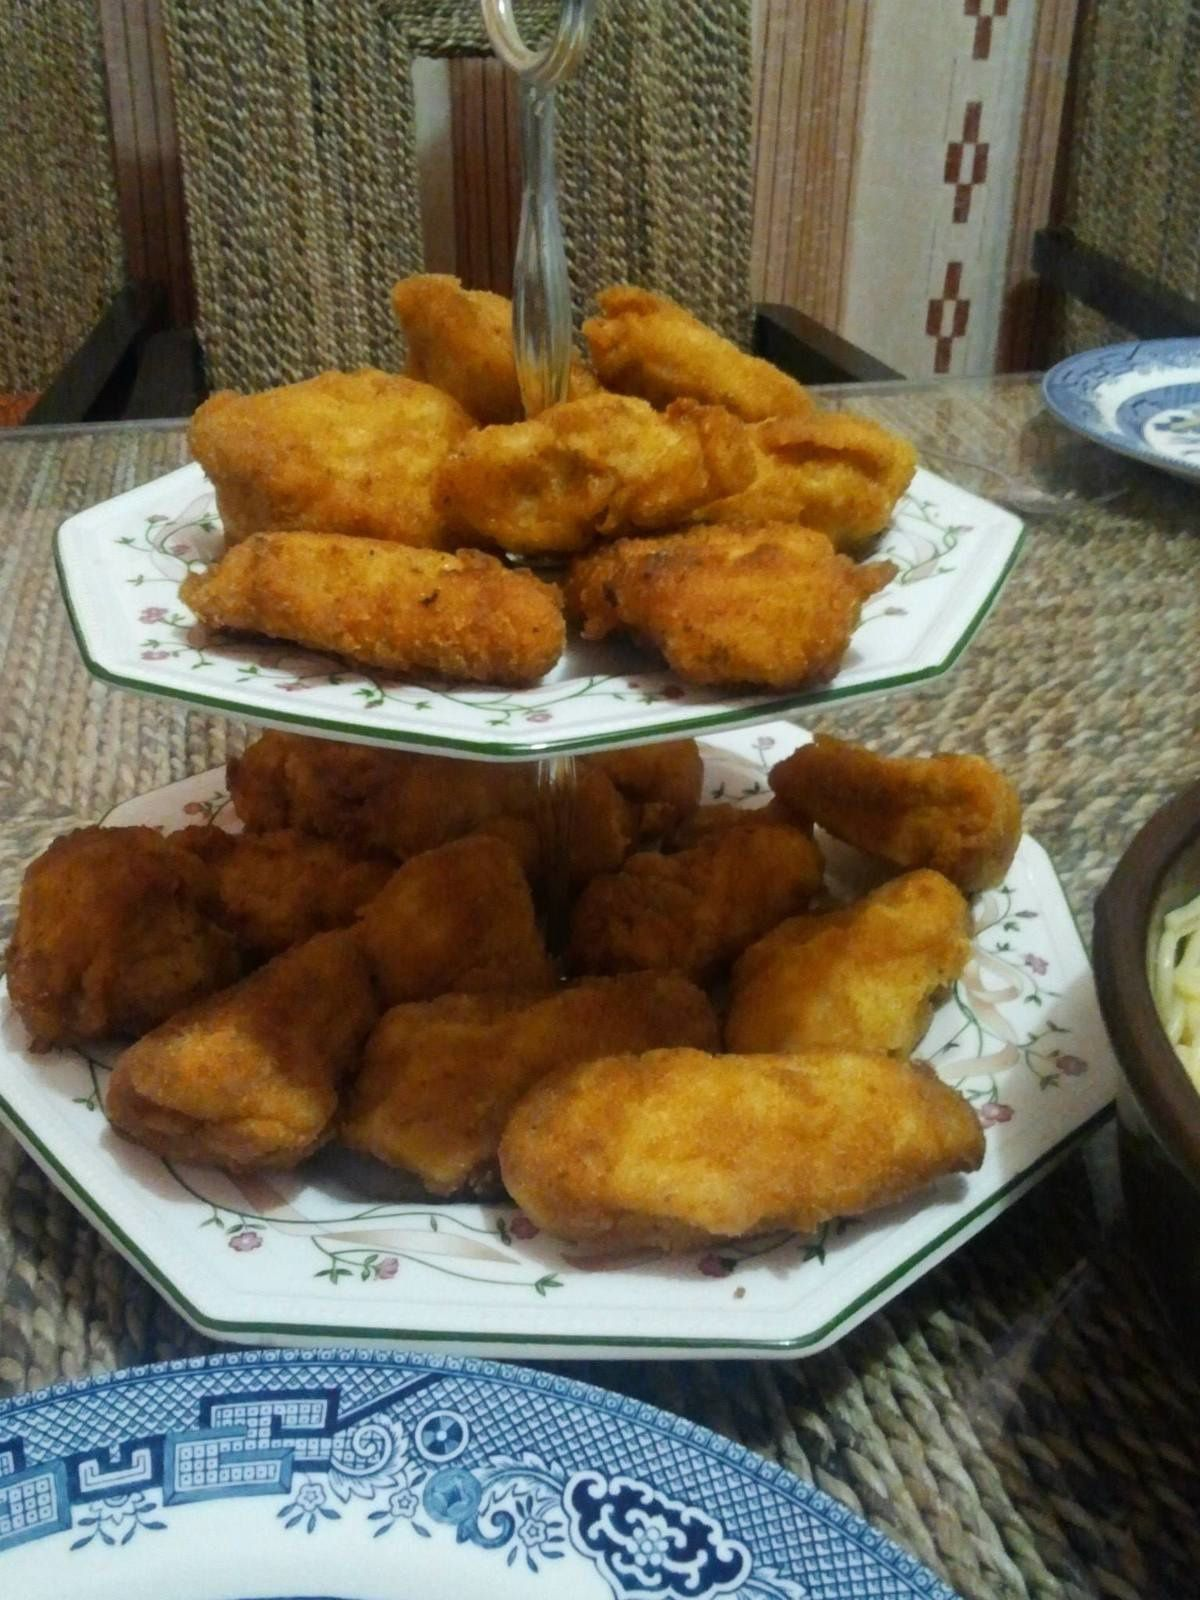 Mega nuggets